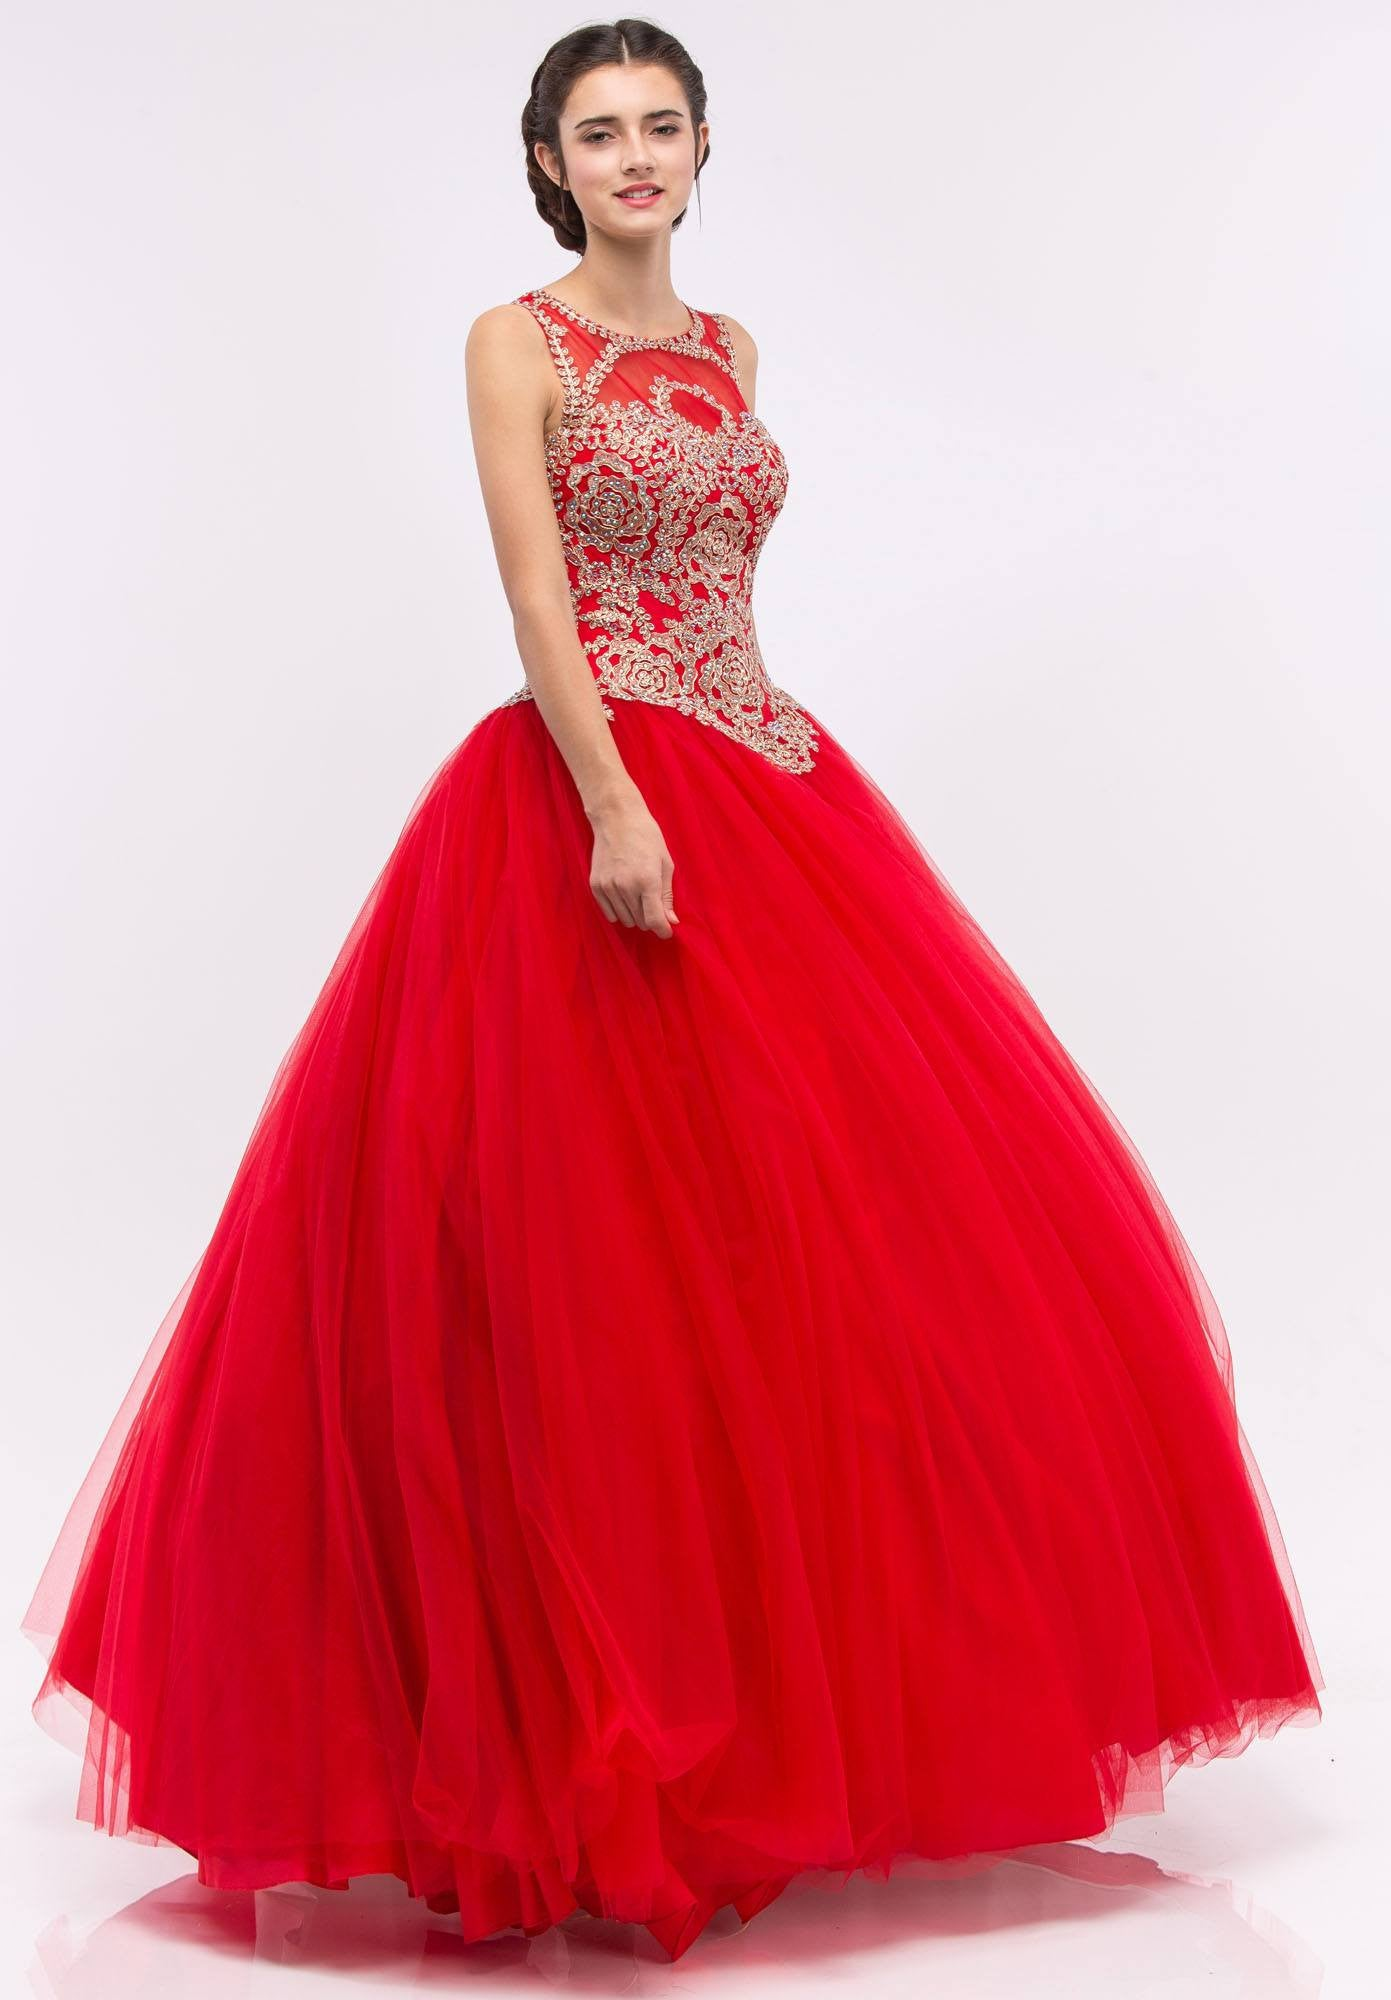 Red Quinceanera Dress with Golden Applique Cut-Out Back Sleeveless ...